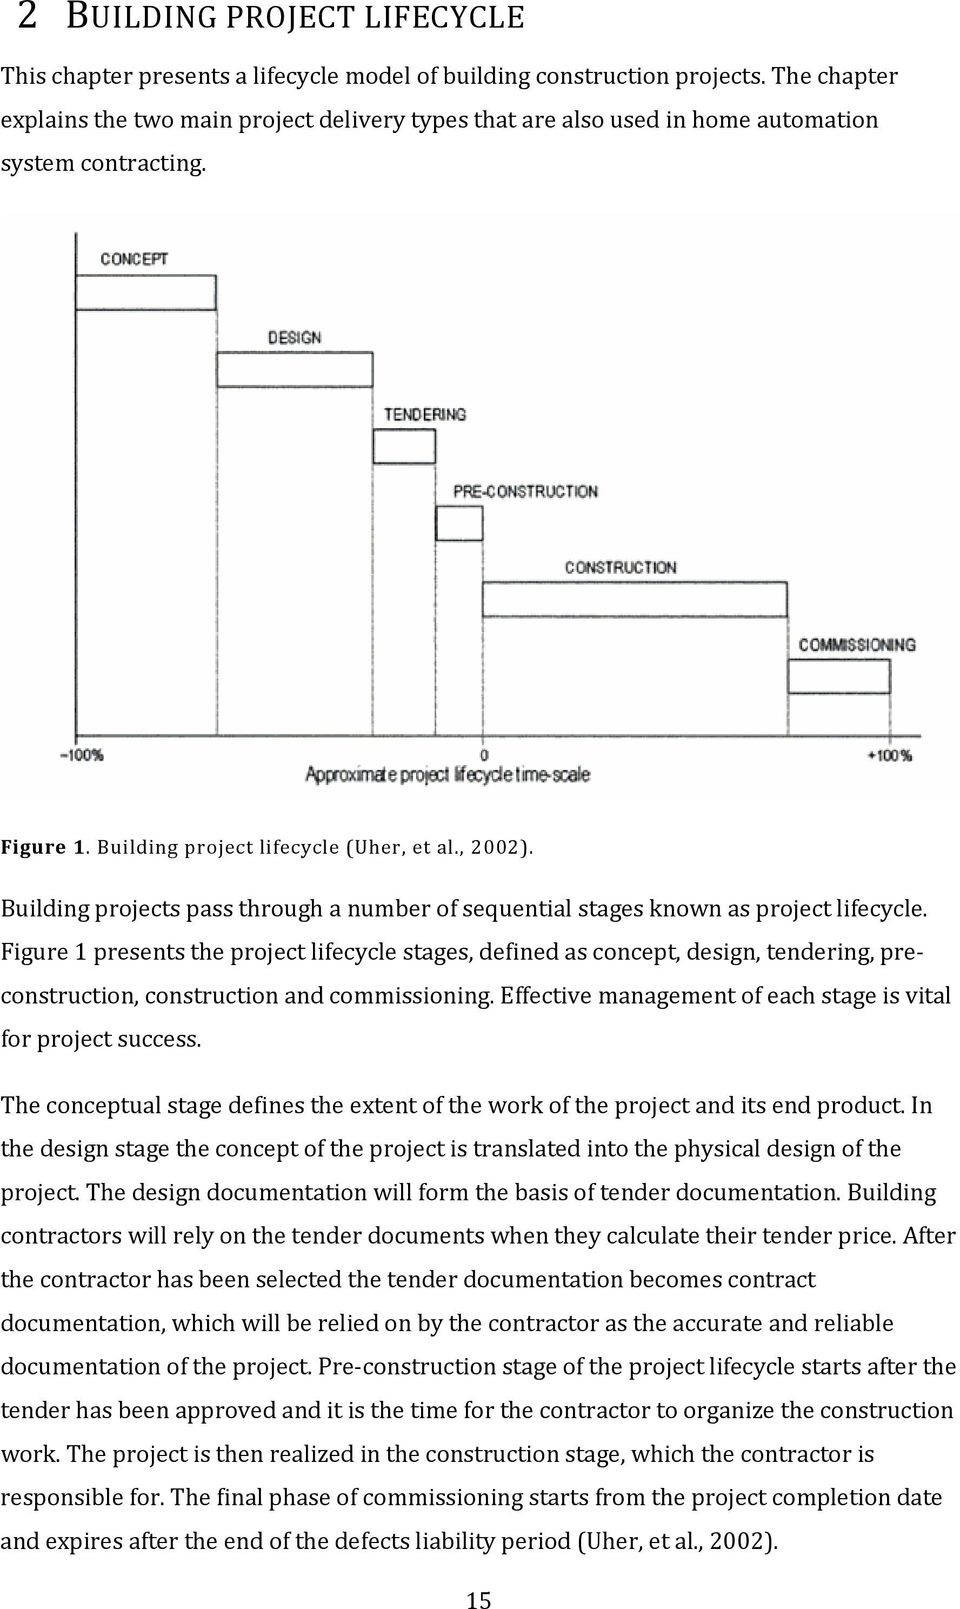 Building projects pass through a number of sequential stages known as project lifecycle.